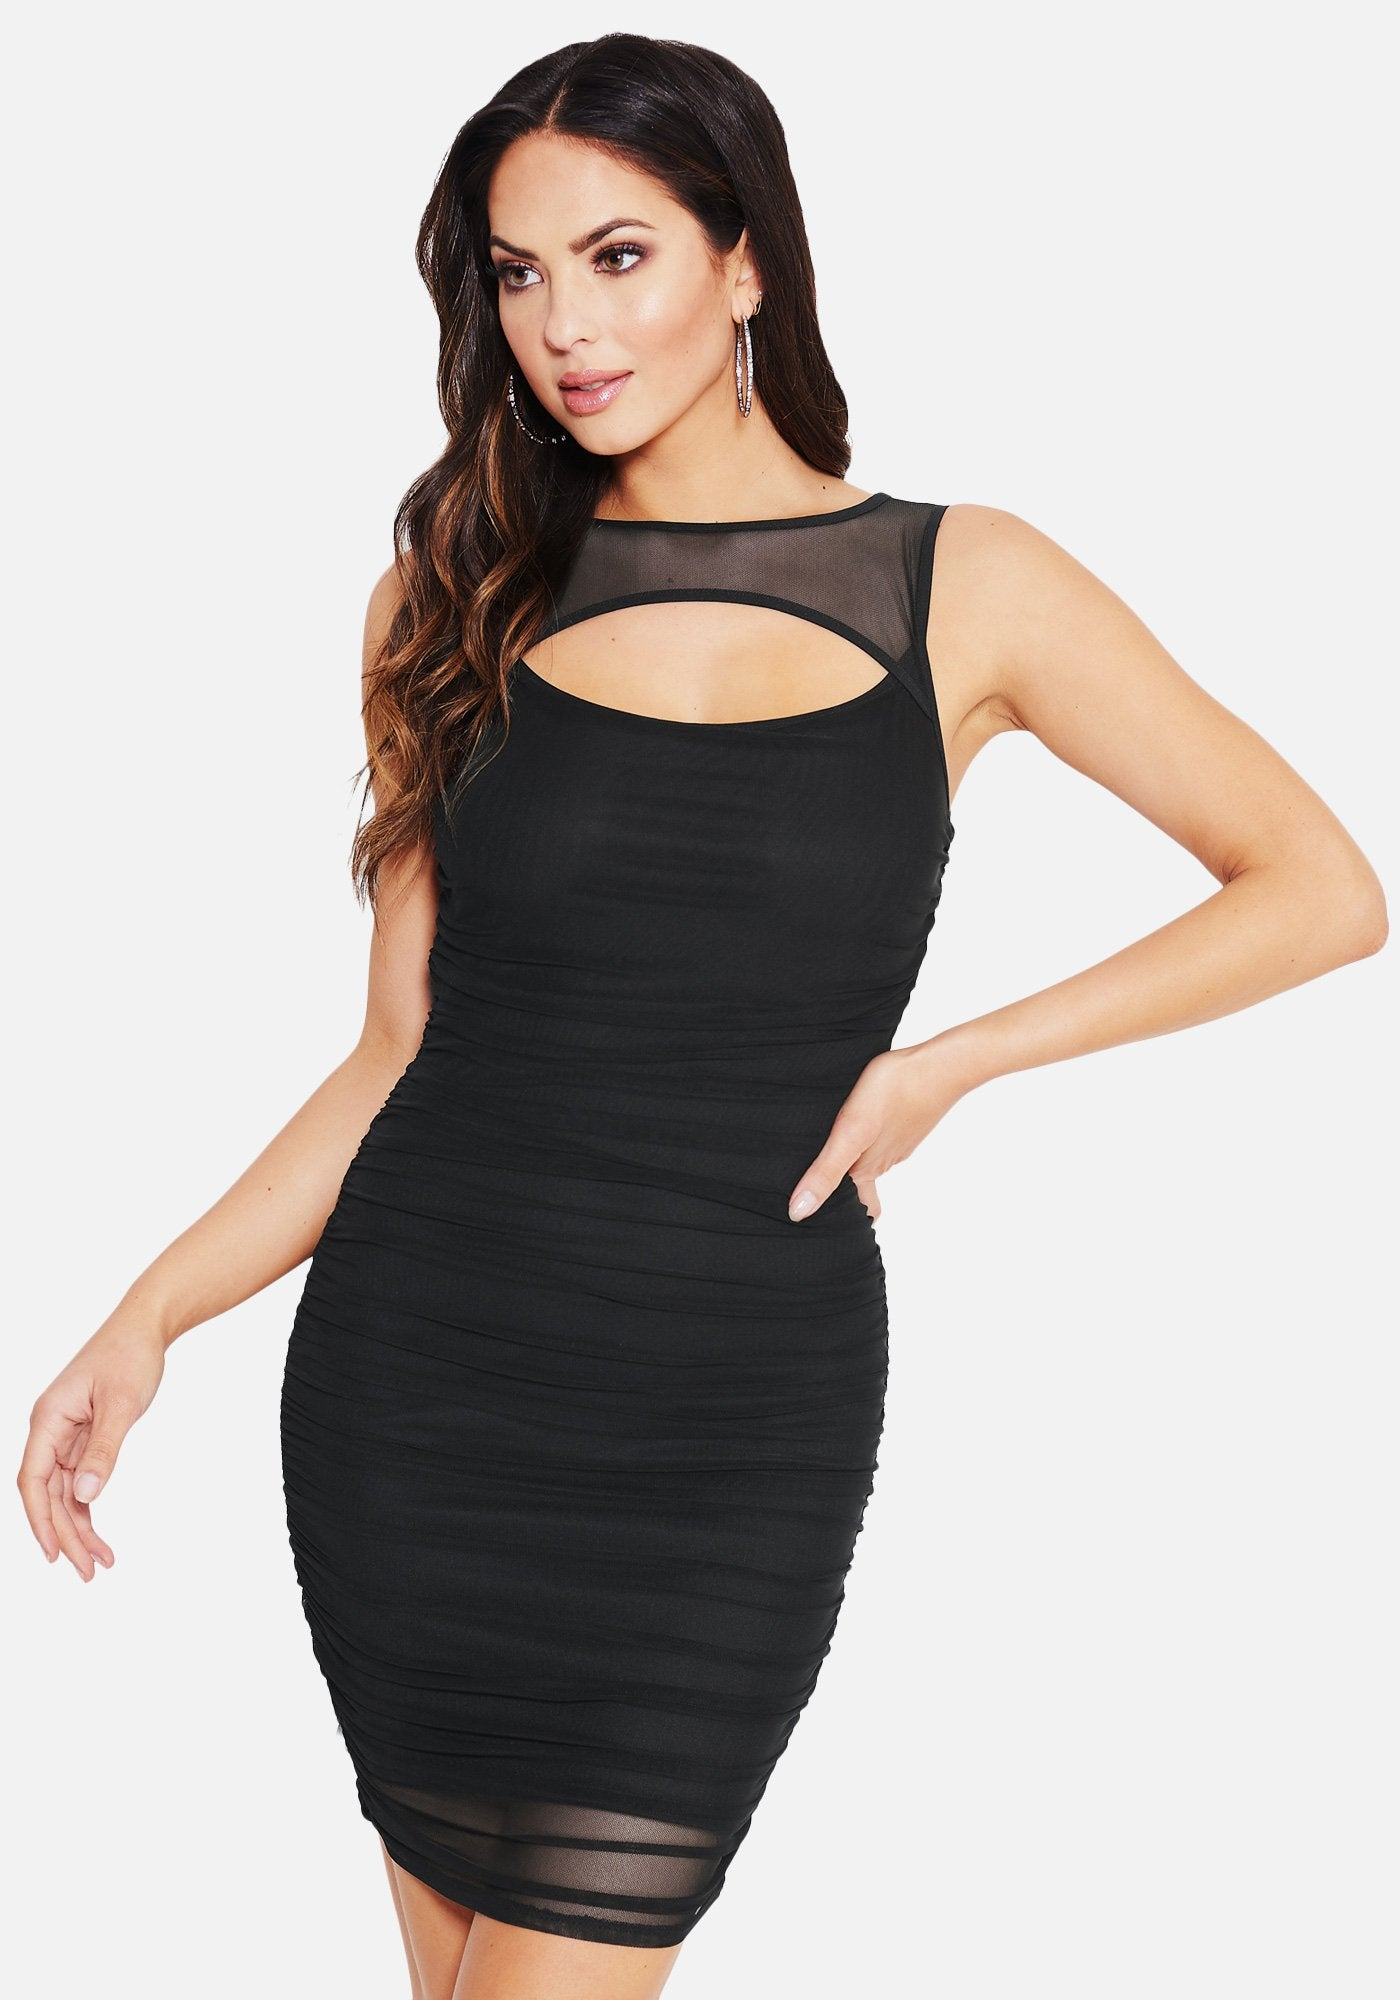 Bebe Women's Front Cutout Ruched Mini Dress, Size XXS in BLACK Spandex